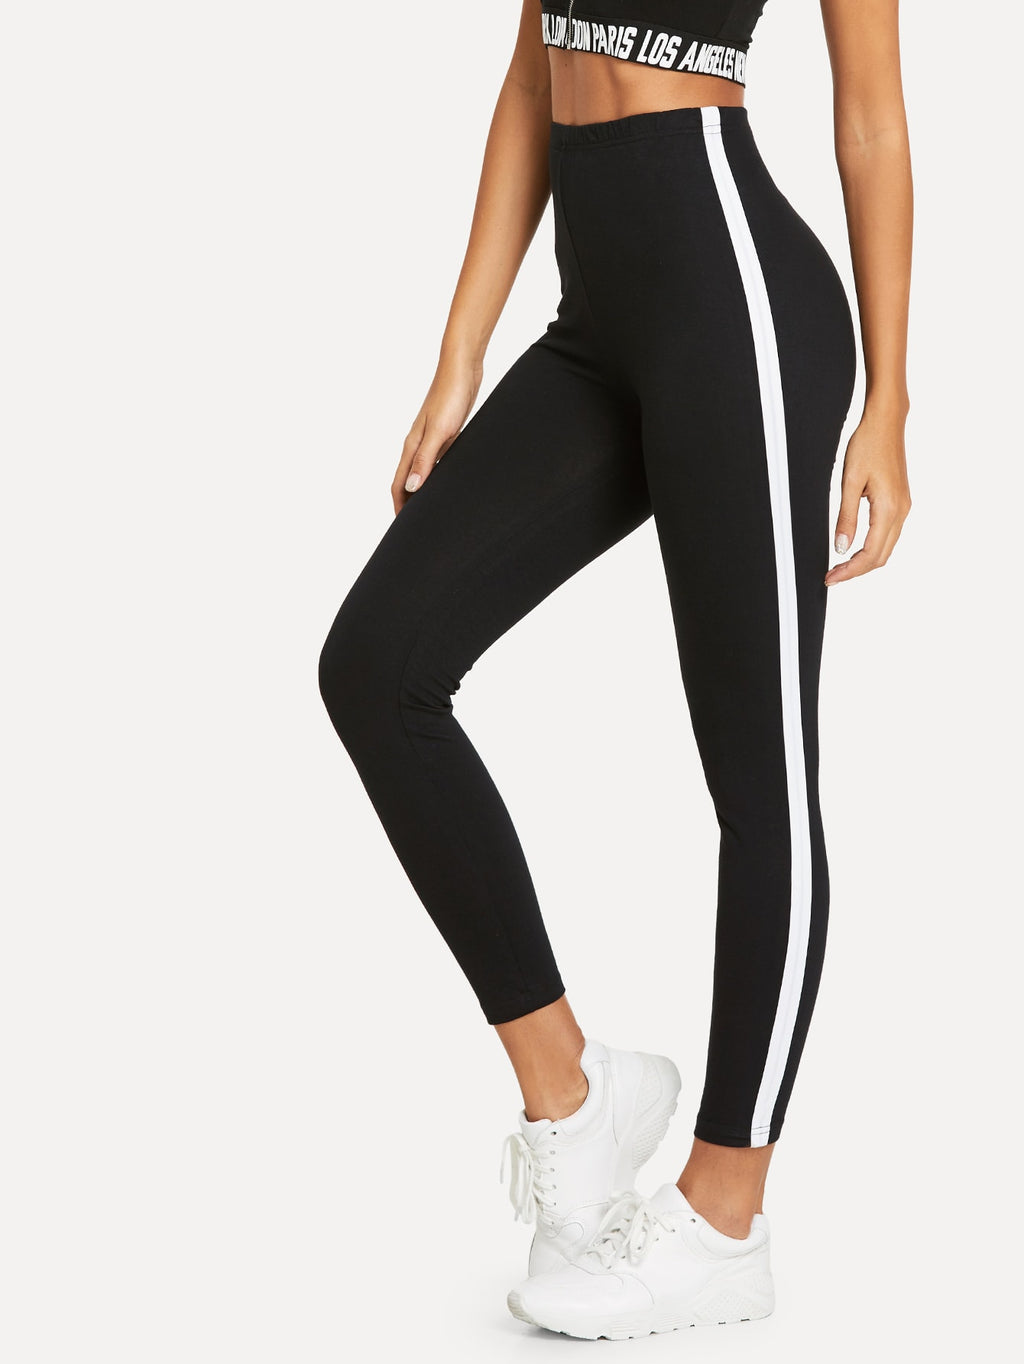 Leggings - Striped Tape Side